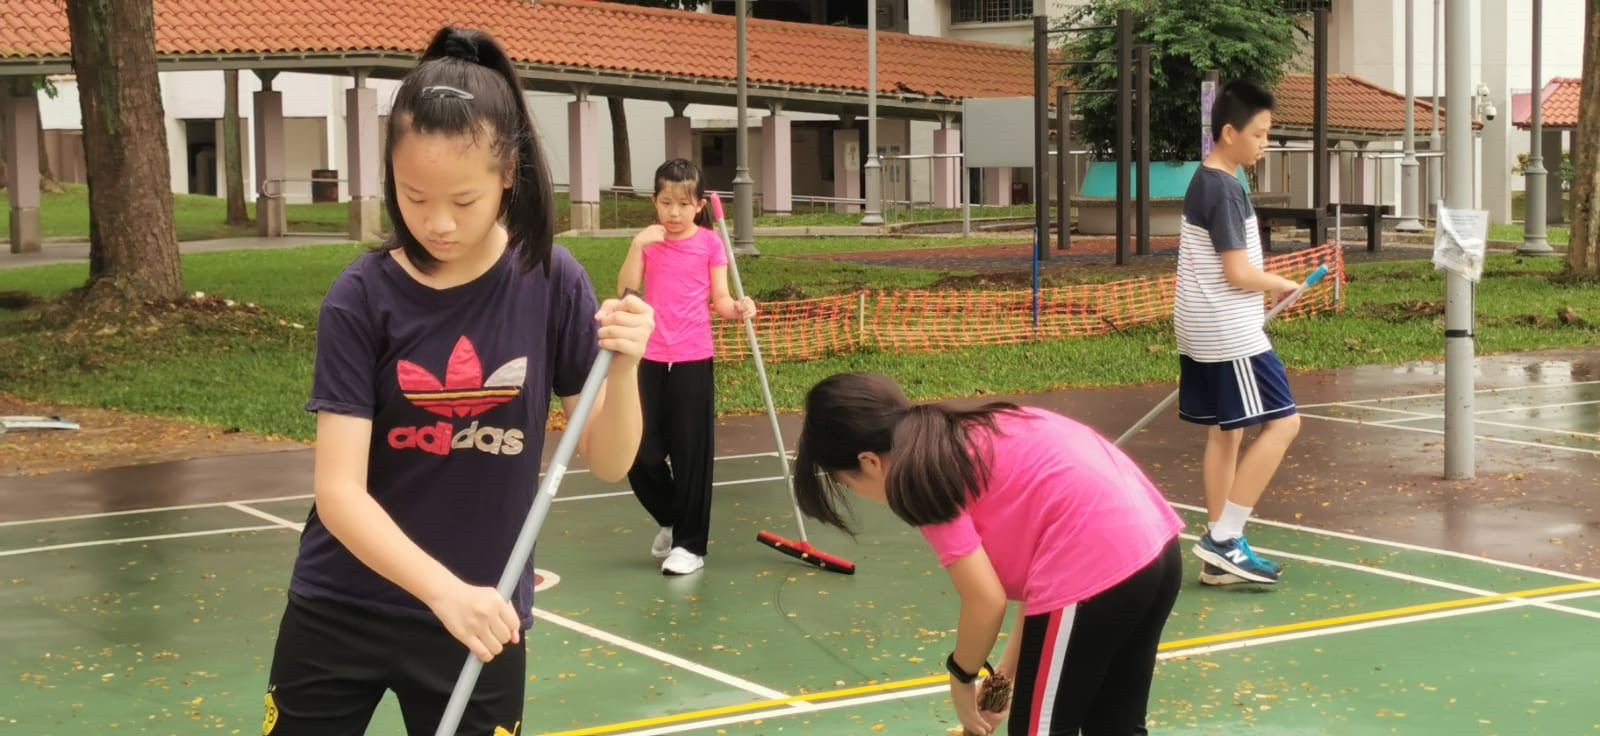 """Having trouble to get your kids to do housework?  Come join pickleball kids"" – Jeffery Kuok in Whatsapp Groupchat.  Sweeping up the courts before the lessons or play is standard practice, done without request."